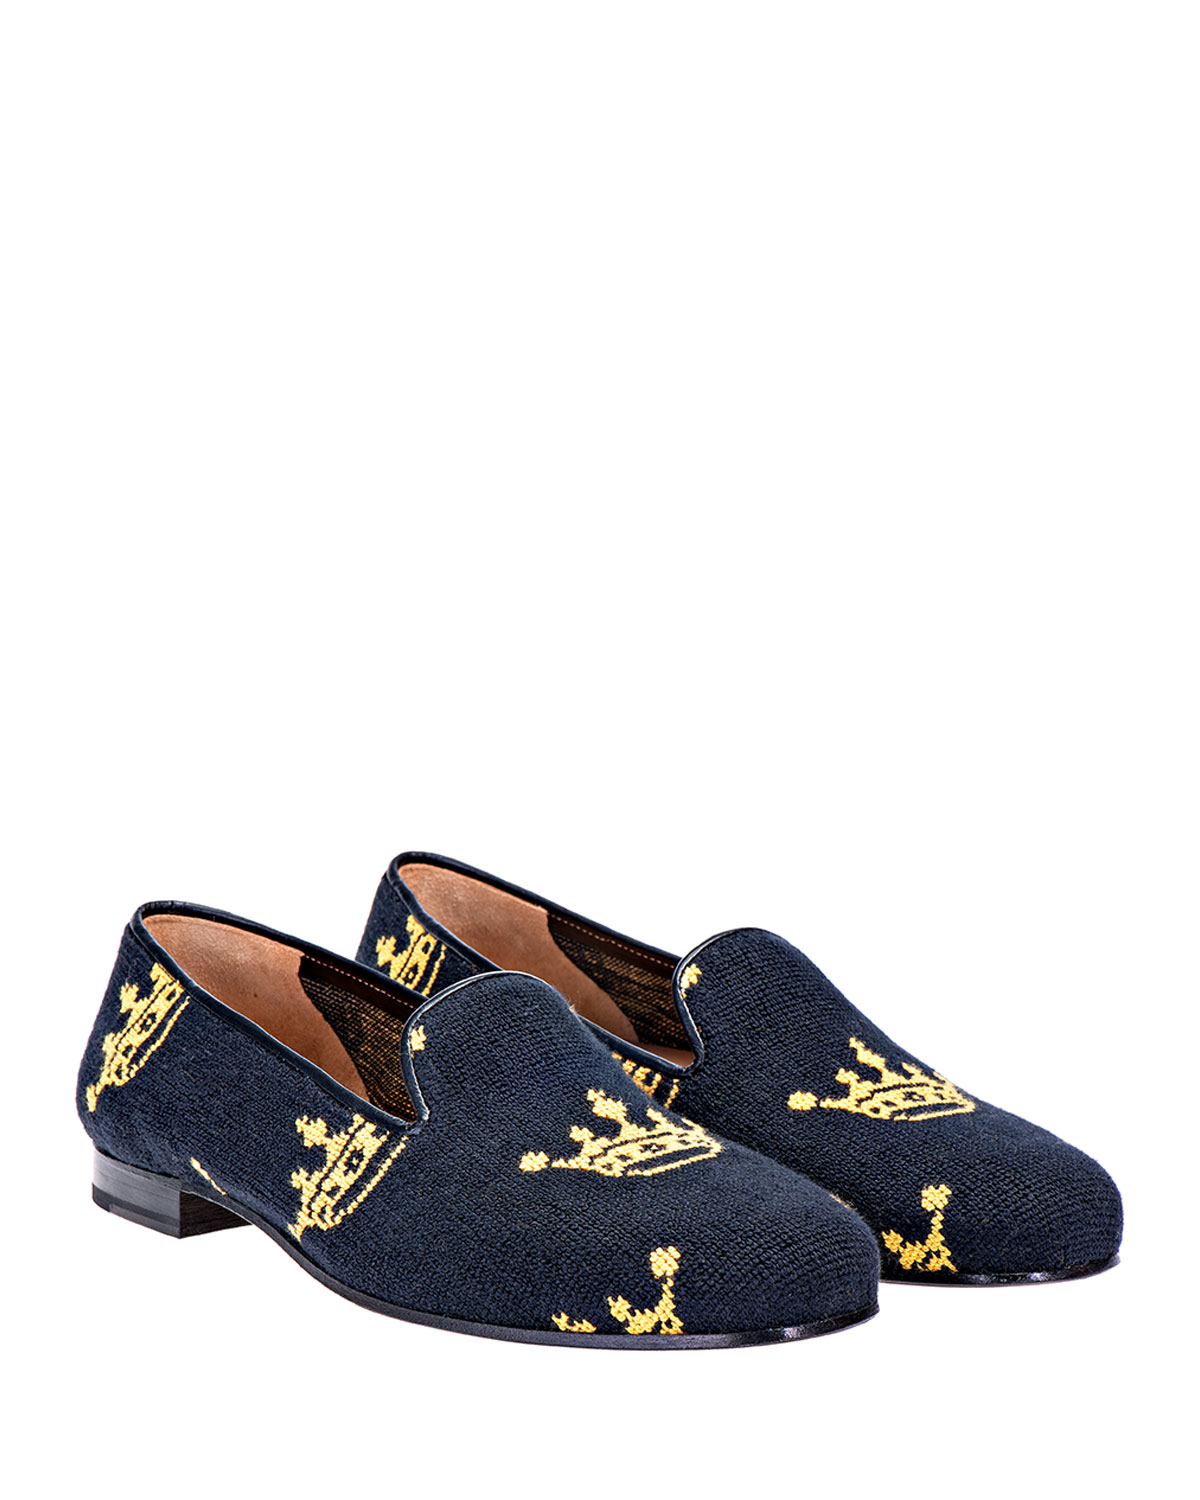 Coronet Needlepoint Slippers